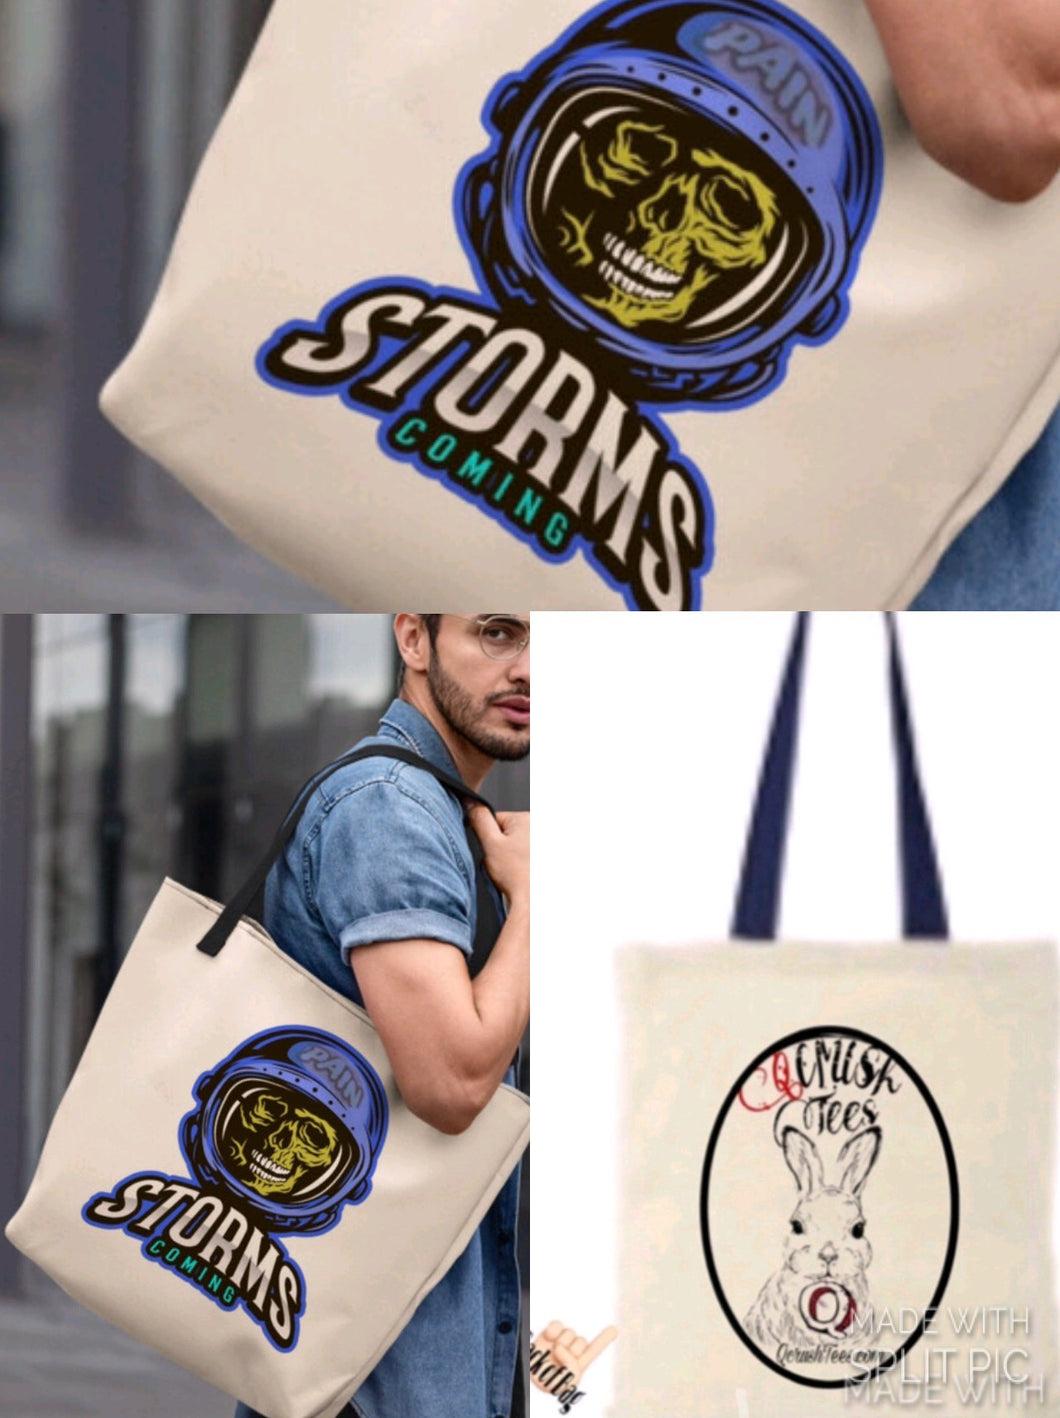 Pain Storms Coming Skull Tote Bag